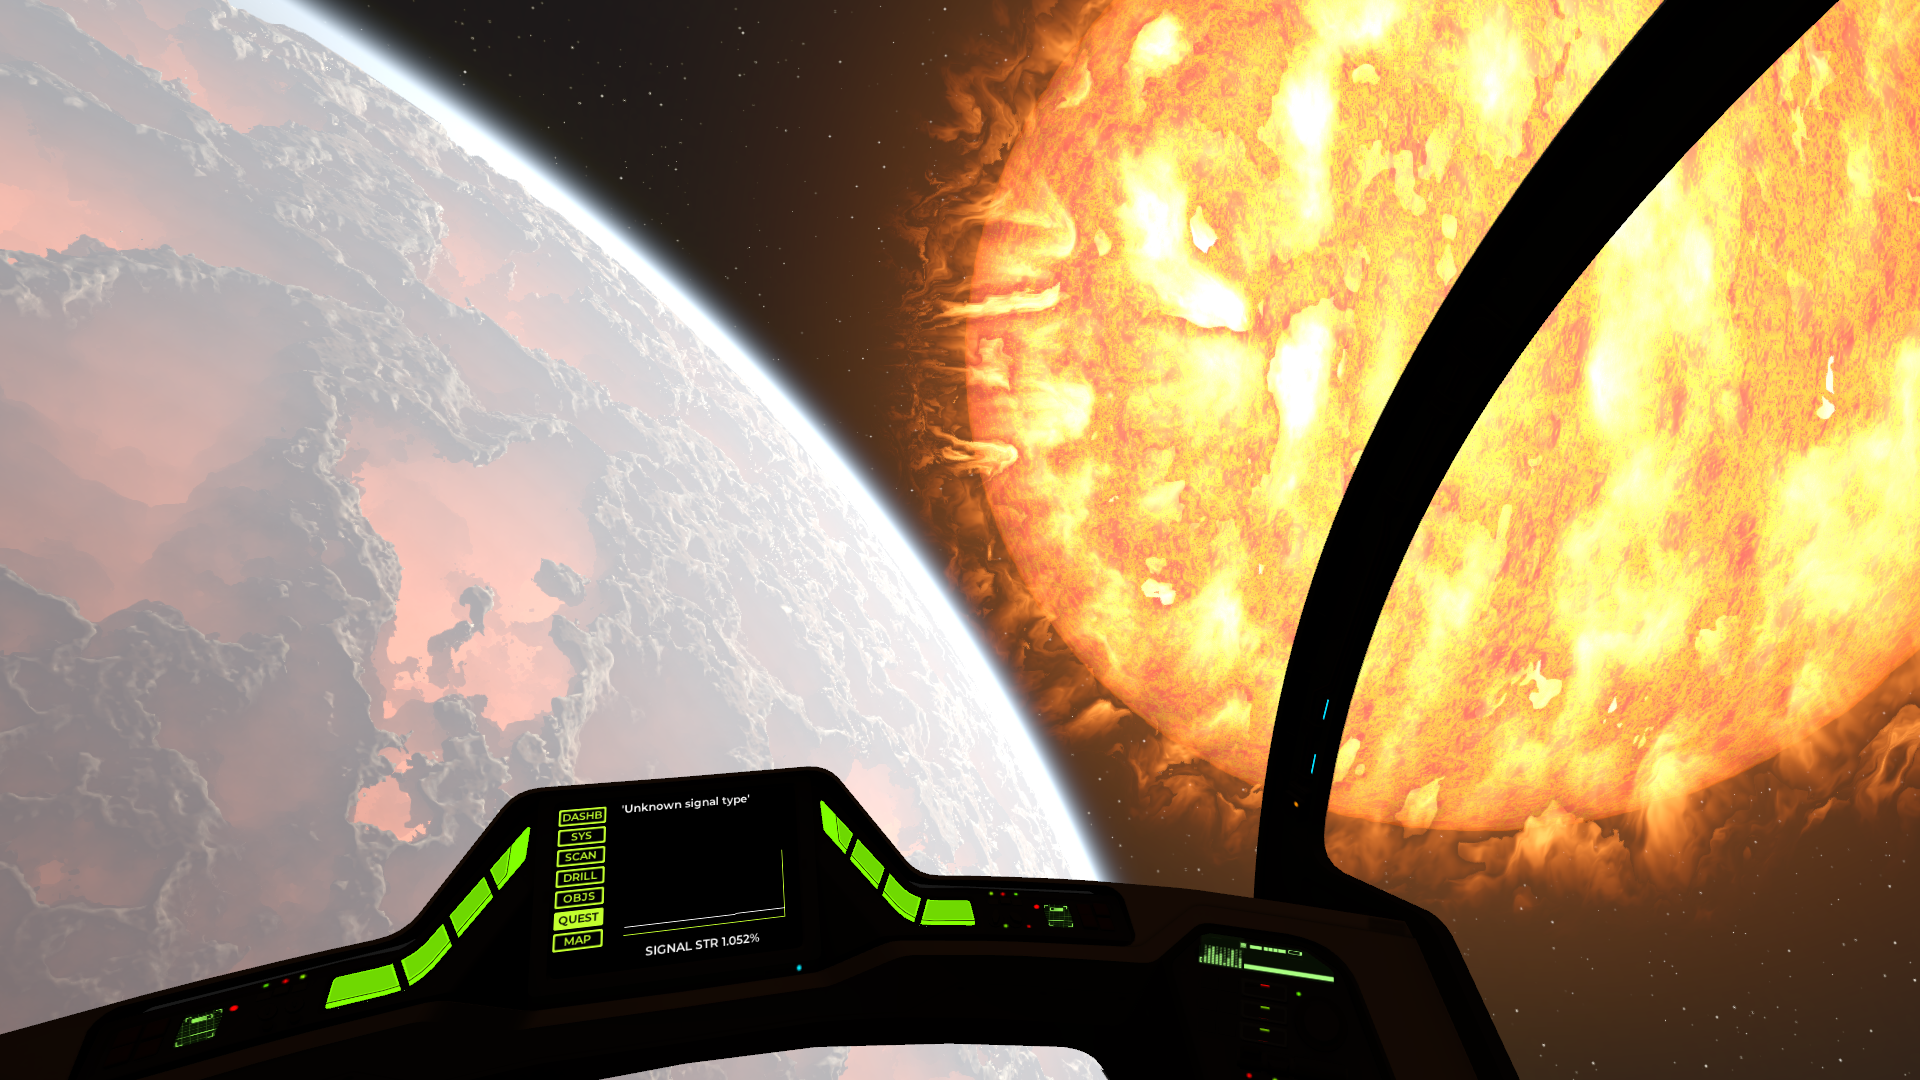 Earth Analog, a space exploration sim inspired by Christopher Nolan's Interstellar, is out now